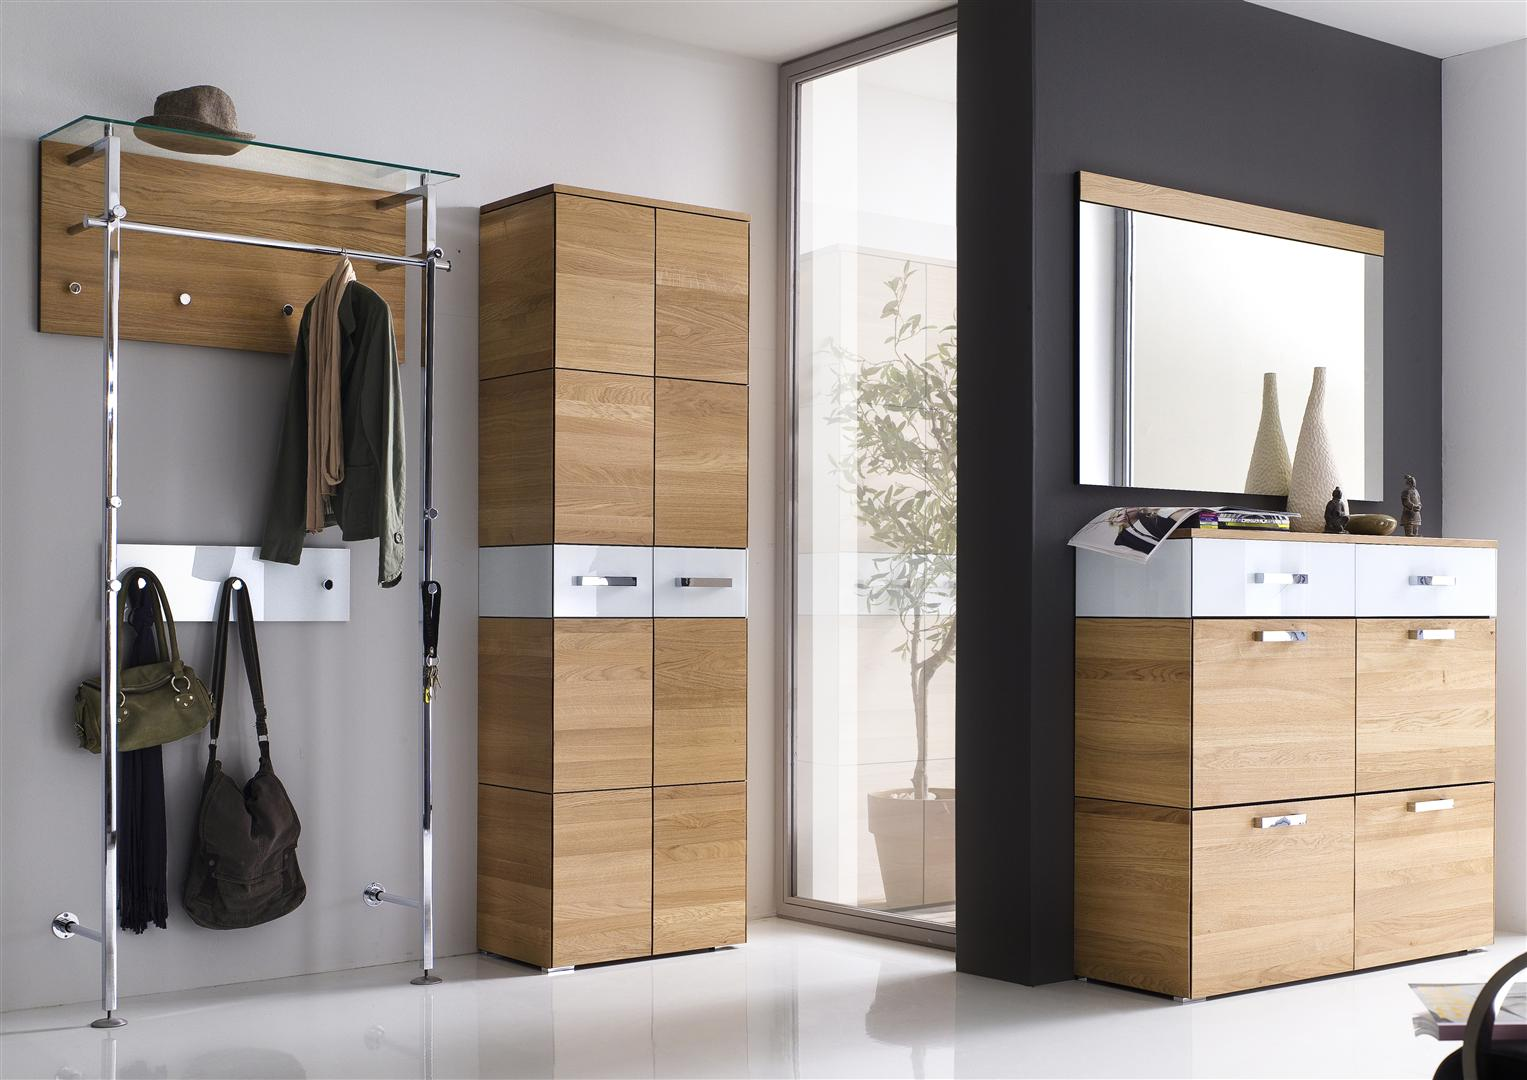 massello die kreative seite ihrer garde robe wittenbreder einrichtungssysteme m bel mit. Black Bedroom Furniture Sets. Home Design Ideas